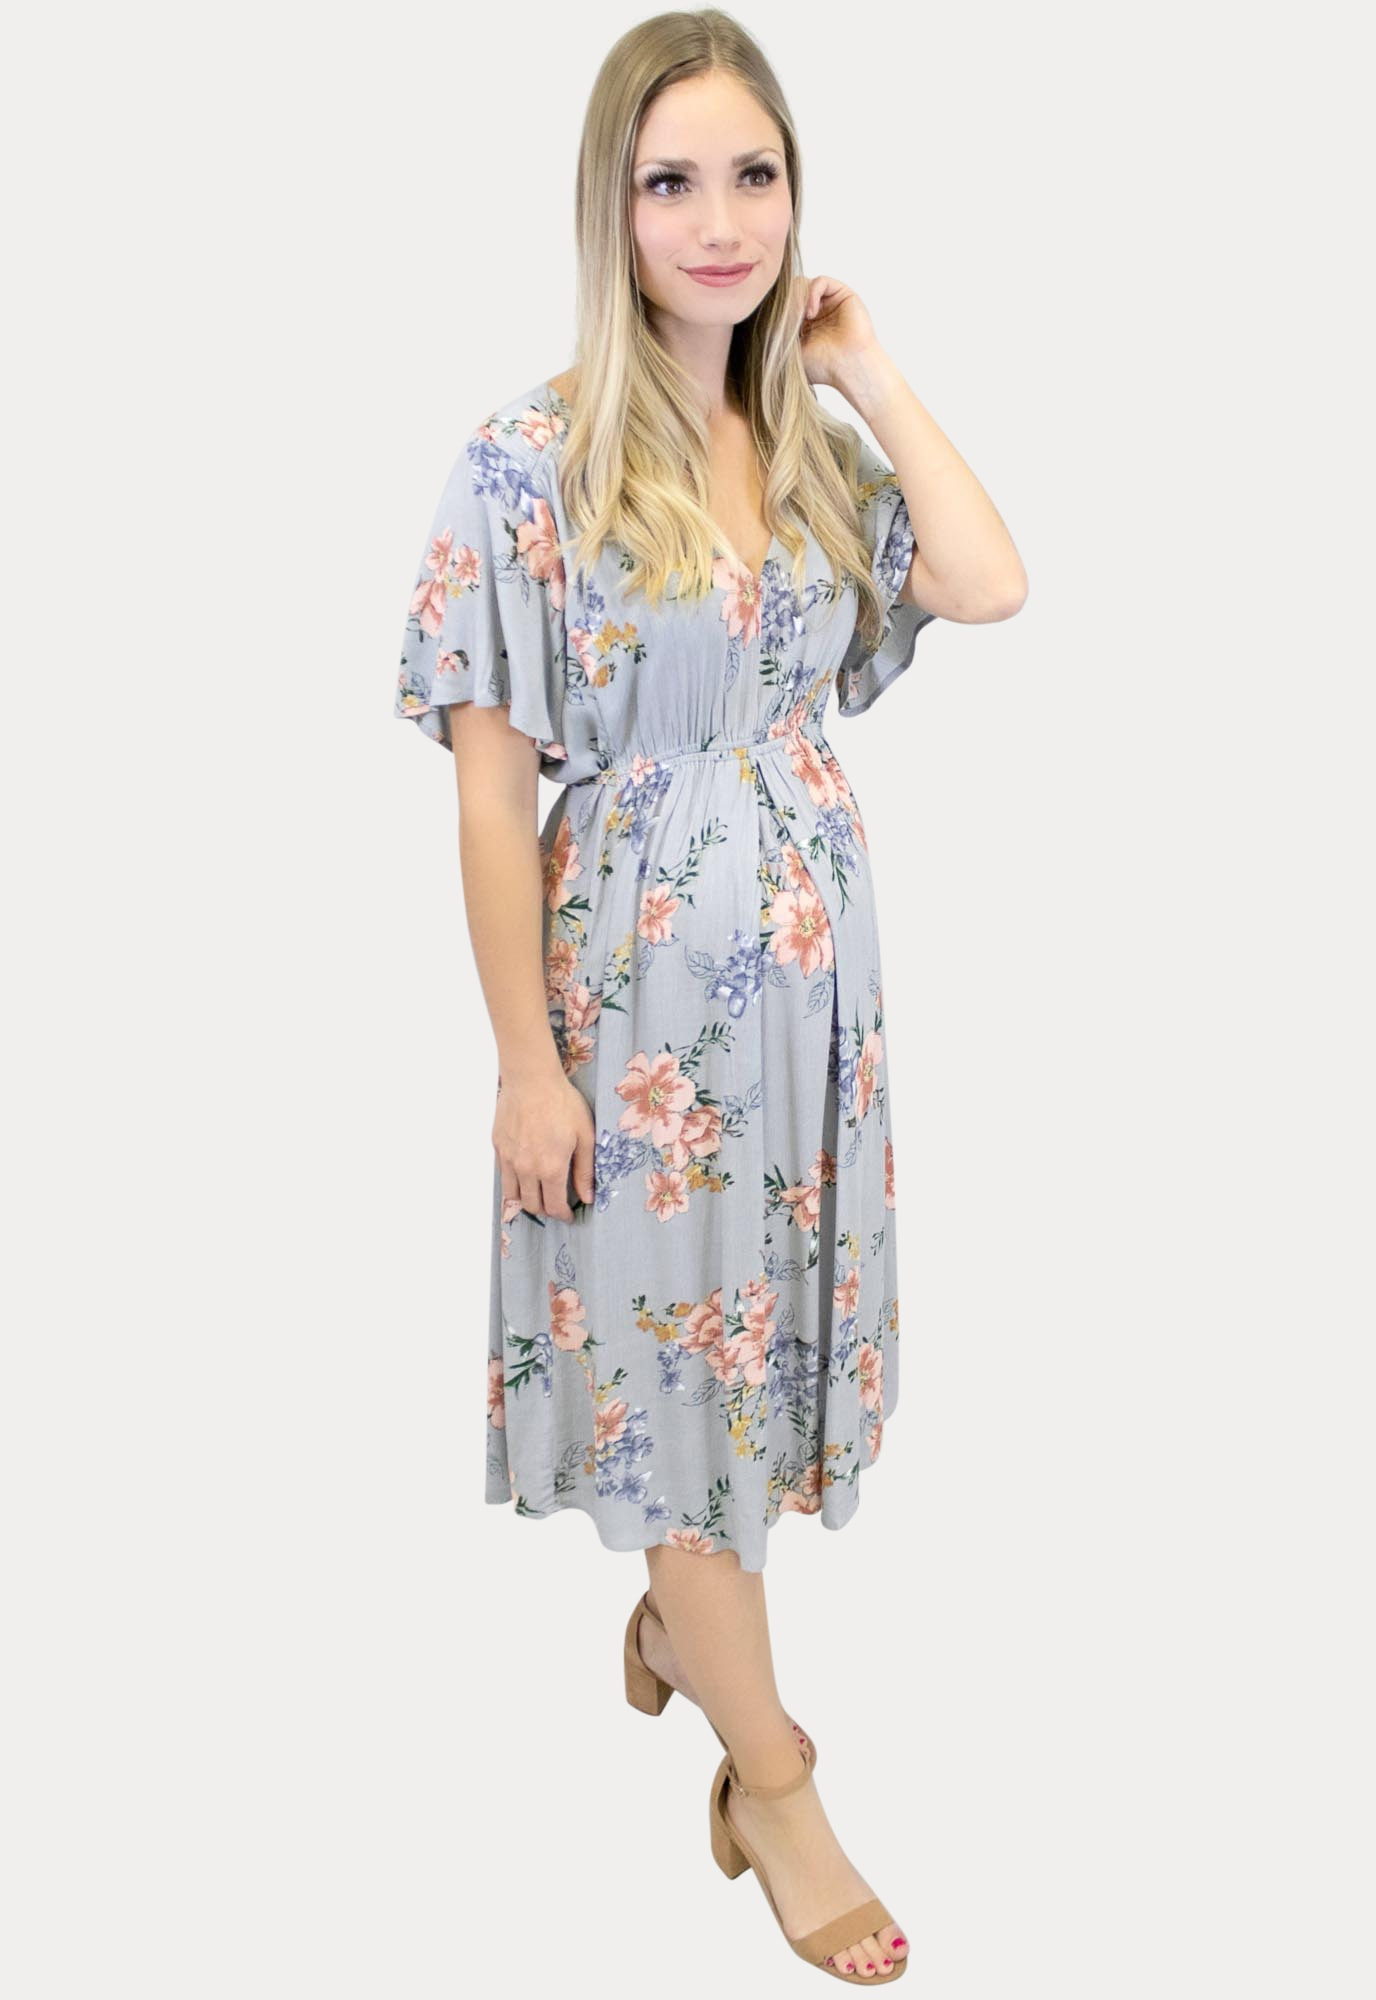 Floral Maternity Sundress With Short Sleeves Sexy Mama Maternity